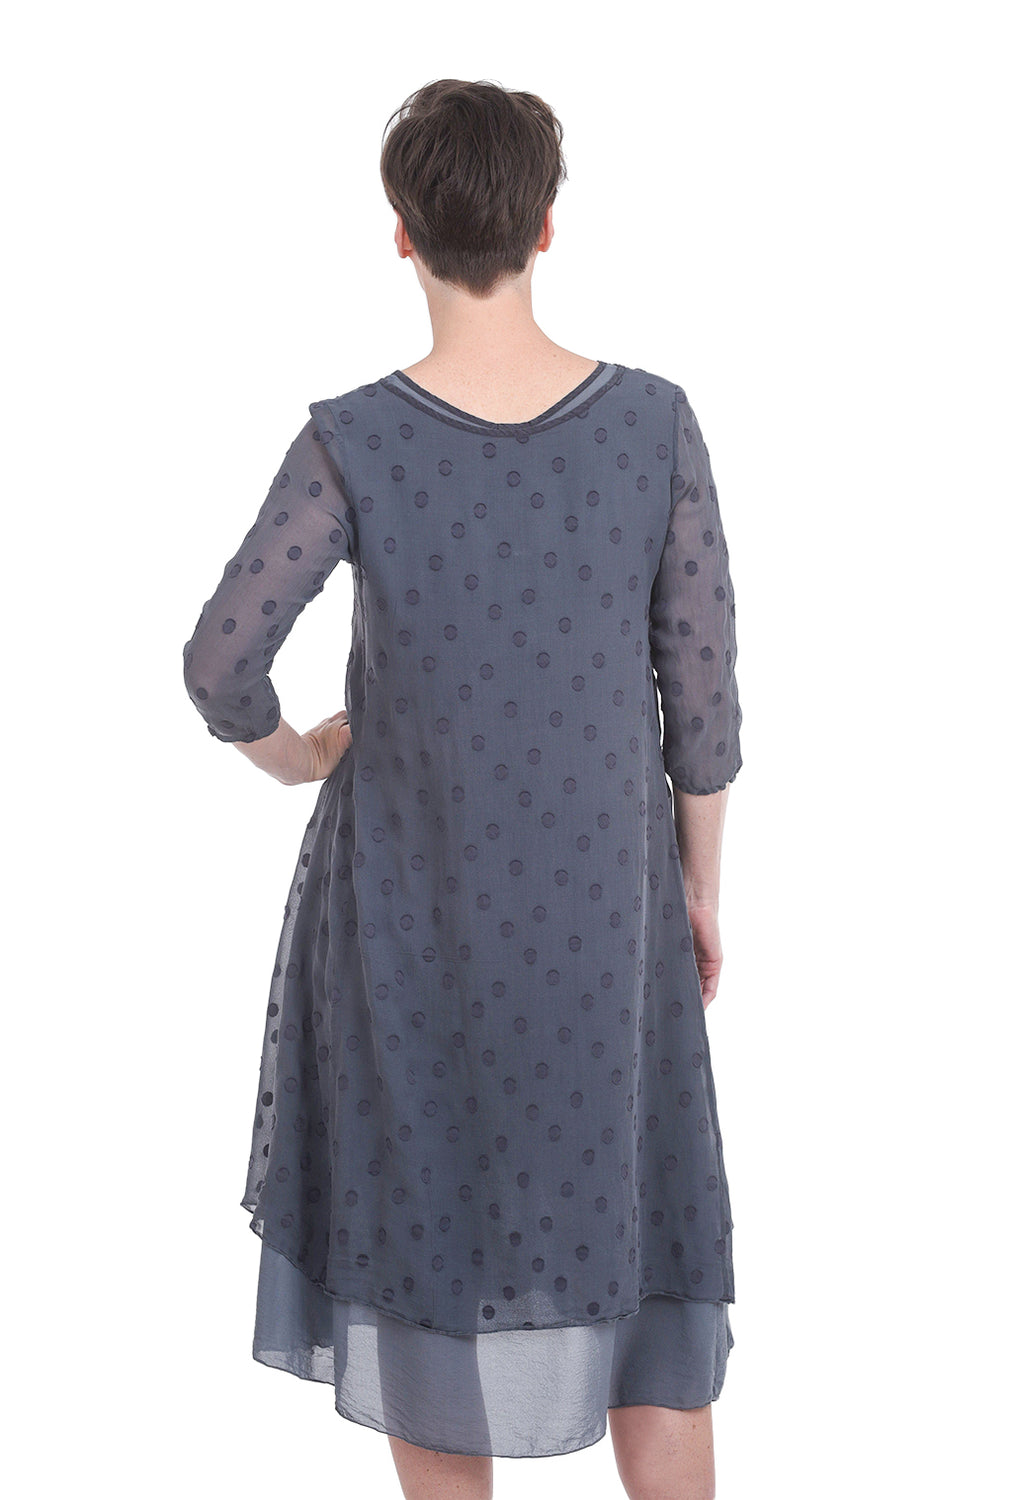 Grizas Floating Dots Dress, Charcoal